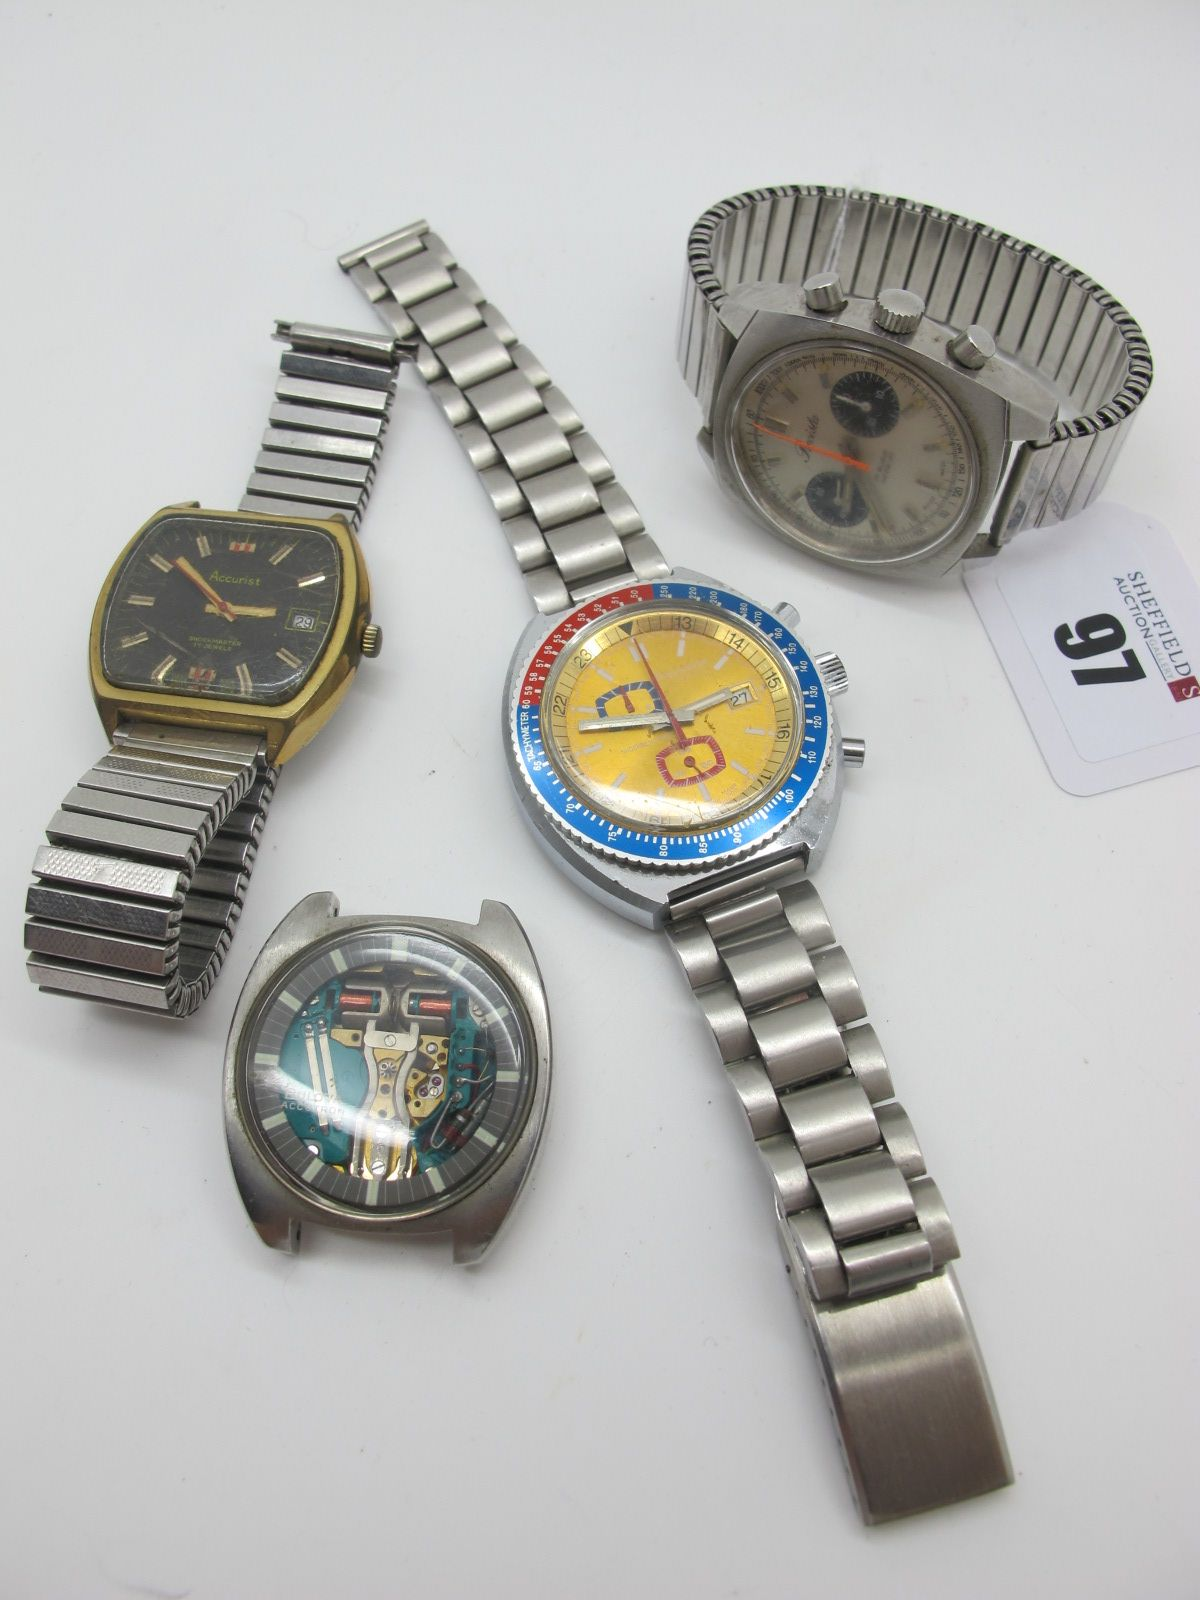 Bulova Accutron; A Retro 'Spaceview' Gent's Wristwatch Head, (no strap / lacking hands); Together